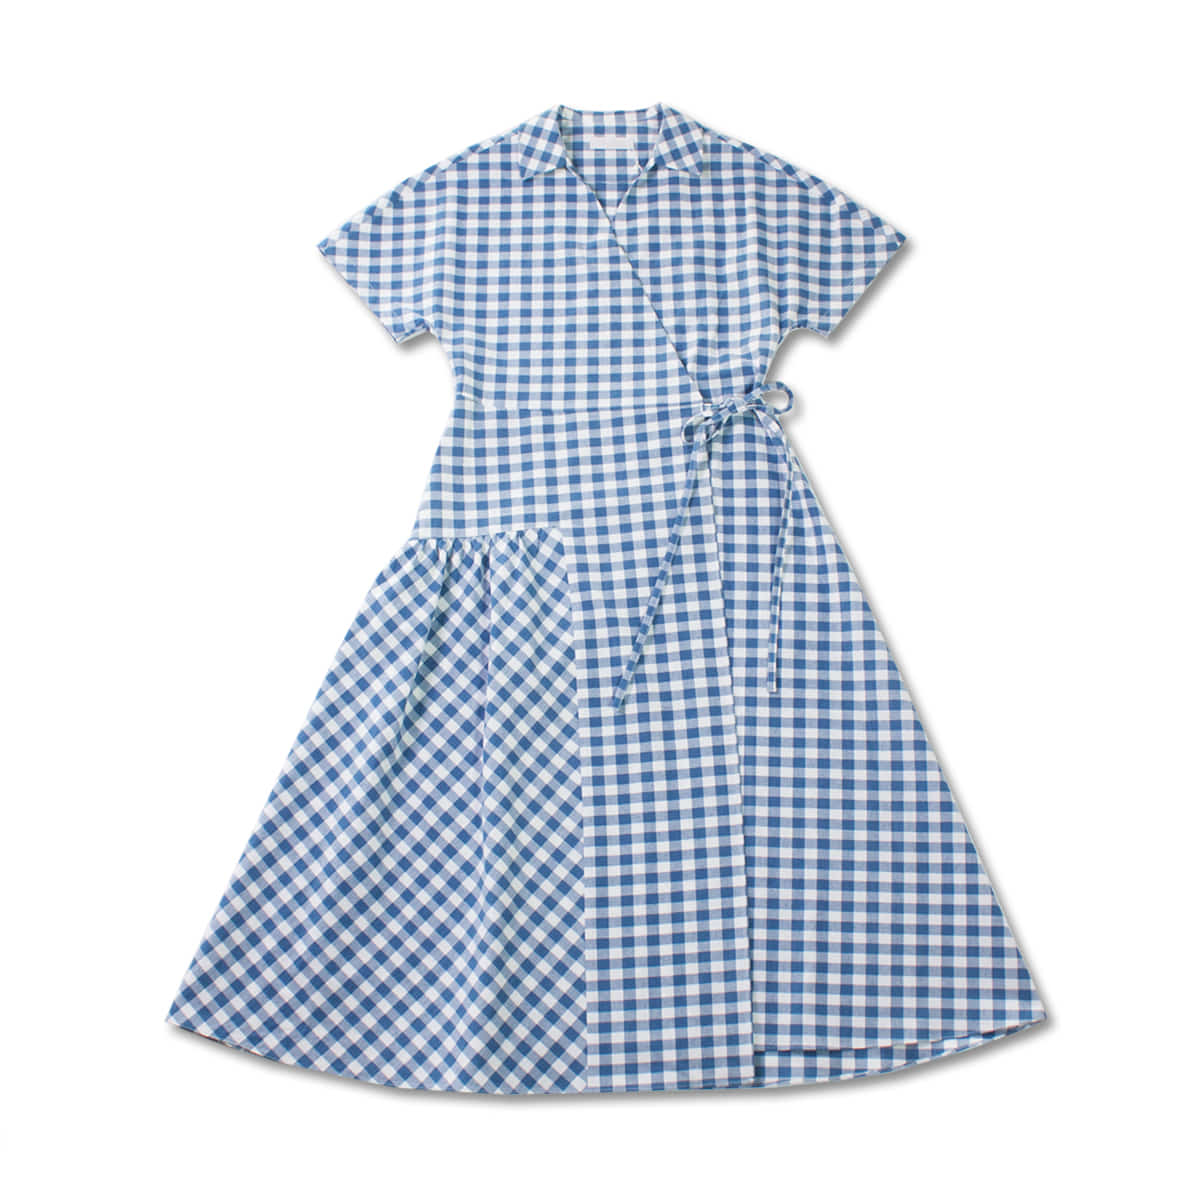 [MUSED] JOIE WRAP DRESS 'INDIGO DYED GINGHAM CHECK'